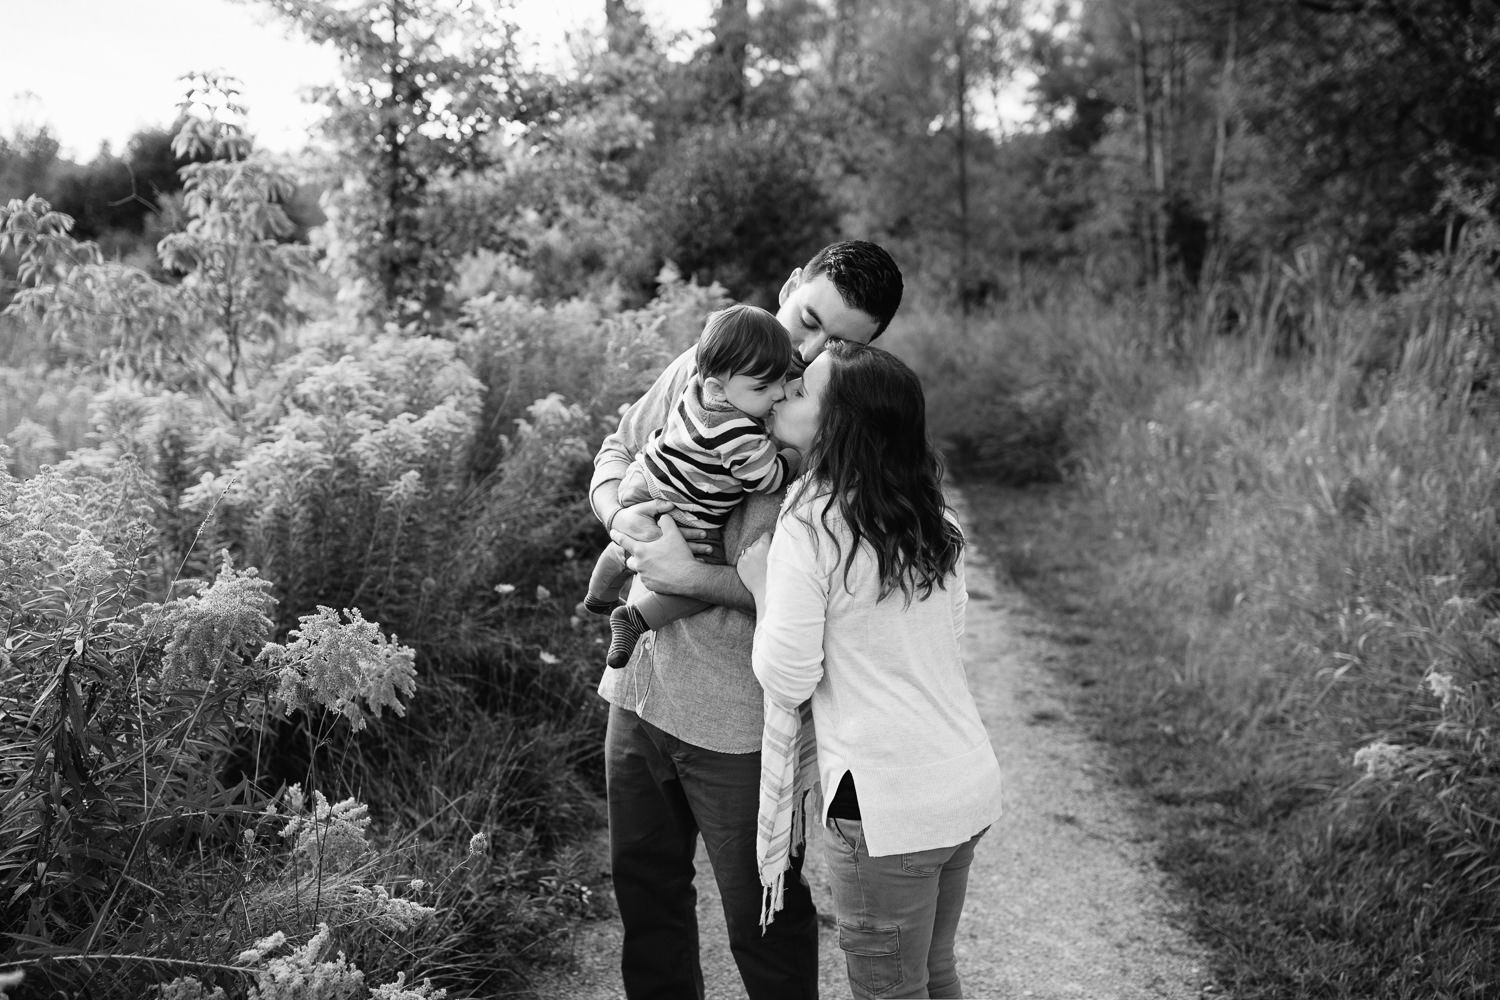 family of 3 standing on path in grassy field, dad holding 1 year old baby boy, mom standing next to husband, leaning over to kiss son - Markham Lifestyle Photos